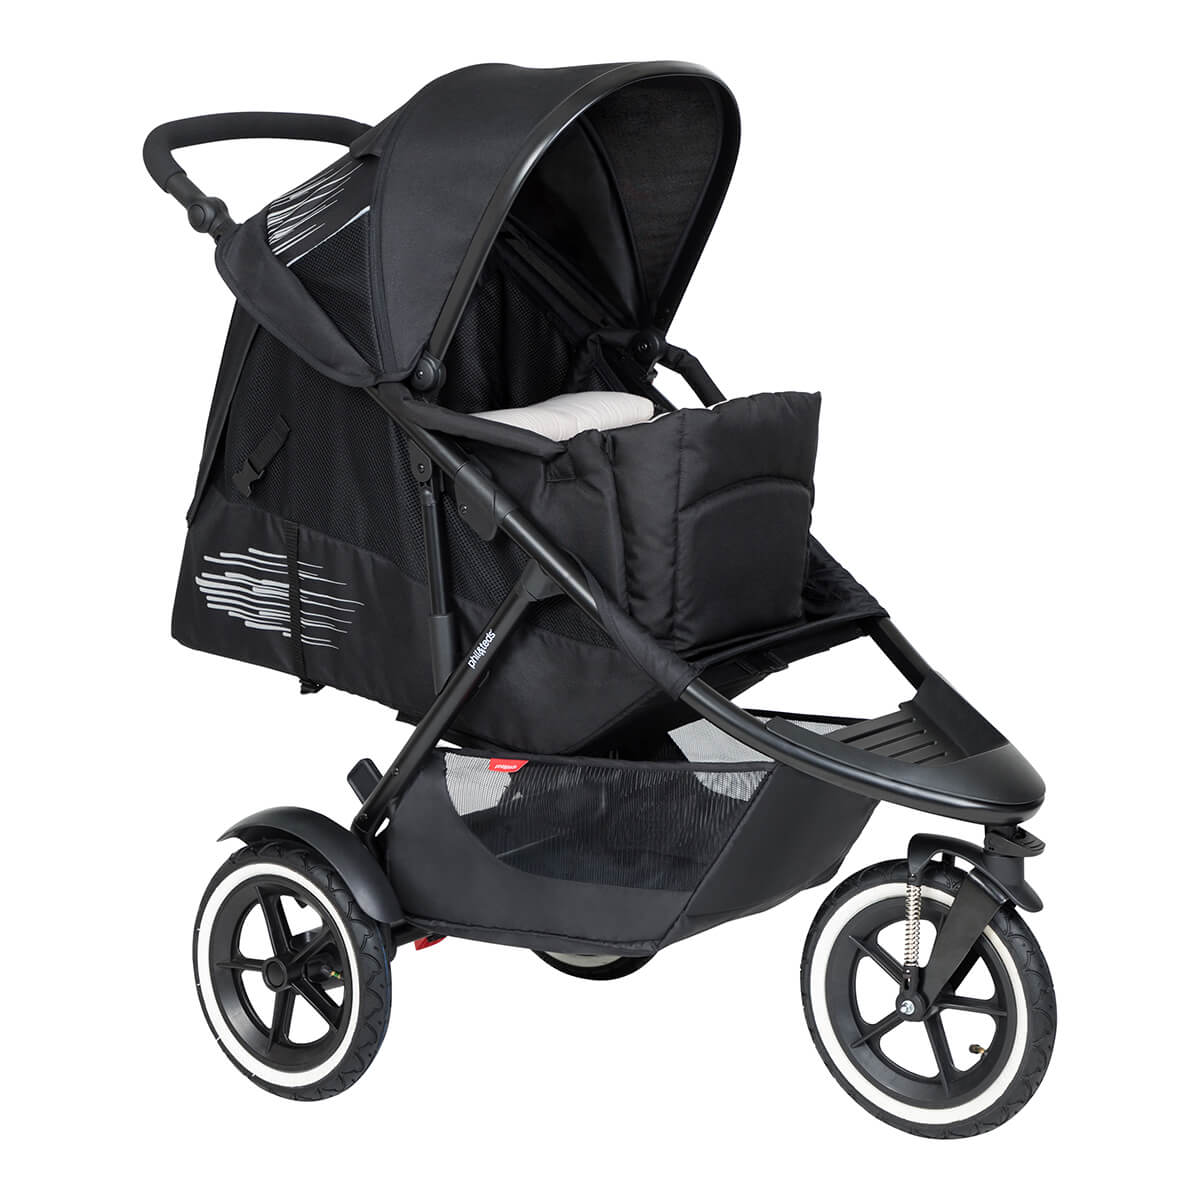 https://cdn.accentuate.io/4509528162392/19272668119128/philteds-sport-poussette-with-cocoon-full-recline-v1626484433500.jpg?1200x1200